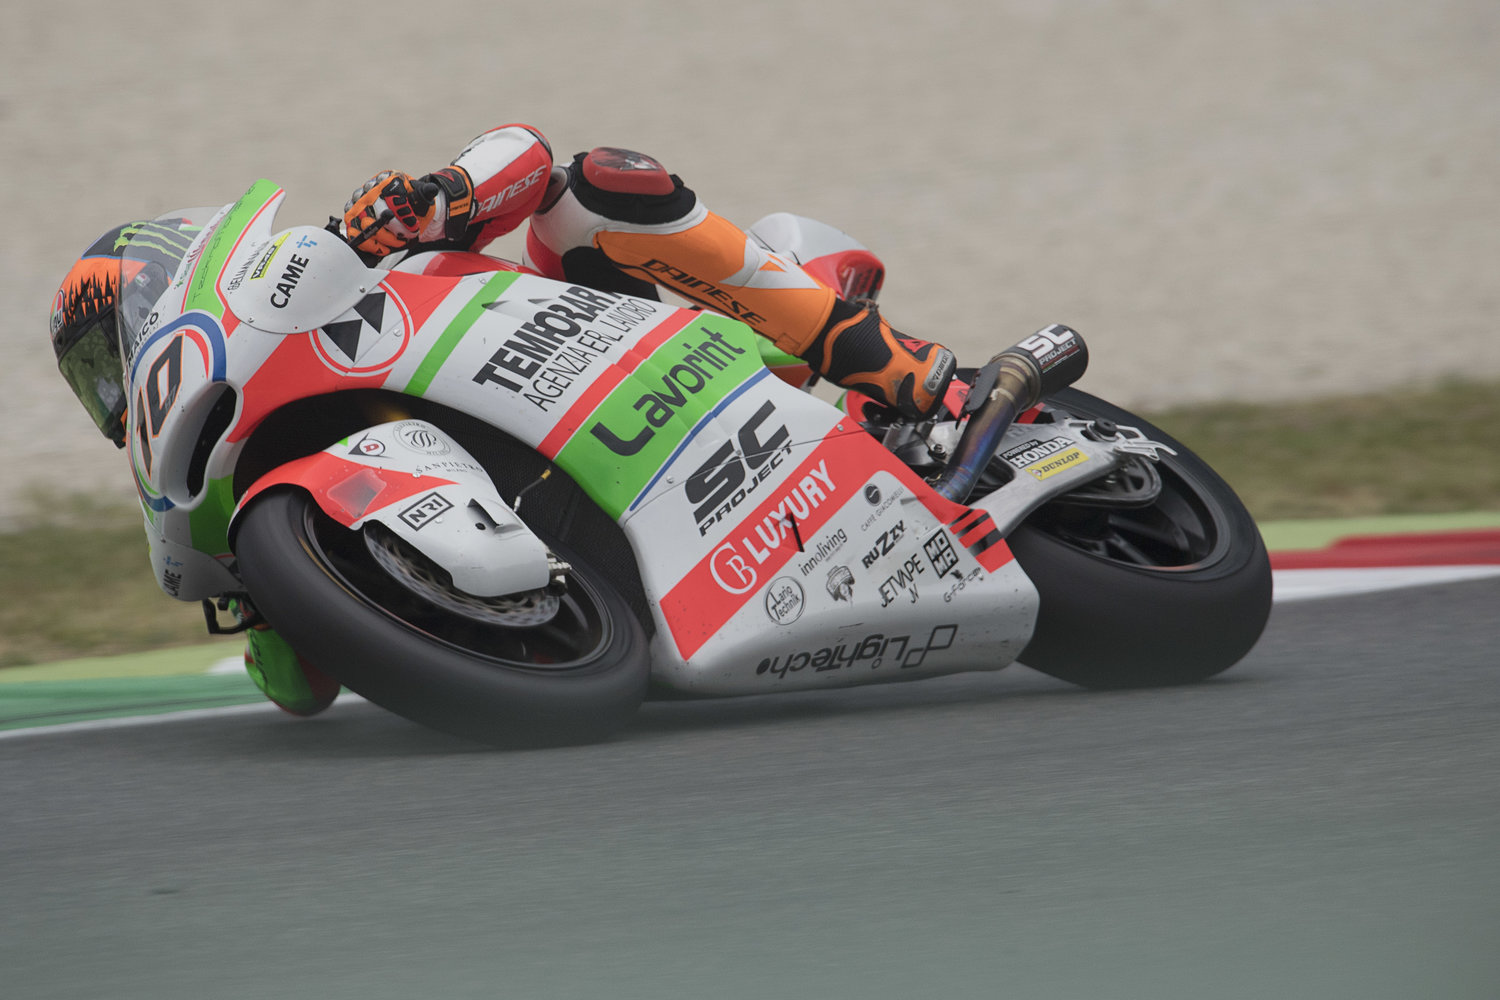 Marini secures top 6 finish with heroic effort